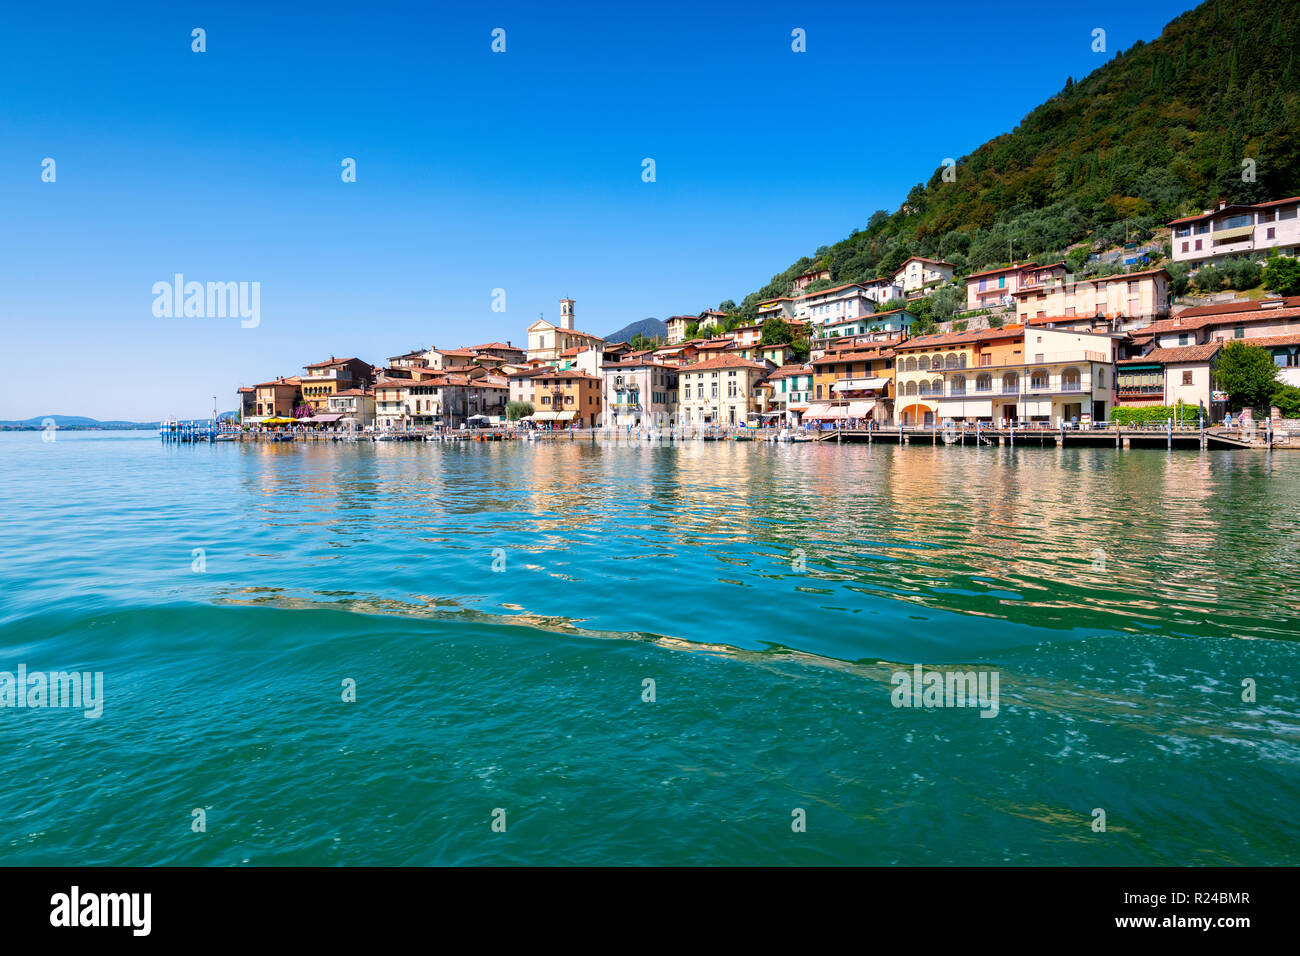 Peschiera Maraglio, Monte Isola, the largest lake island in Europe, Province of Brescia, Lombardy, Italy, Europe - Stock Image